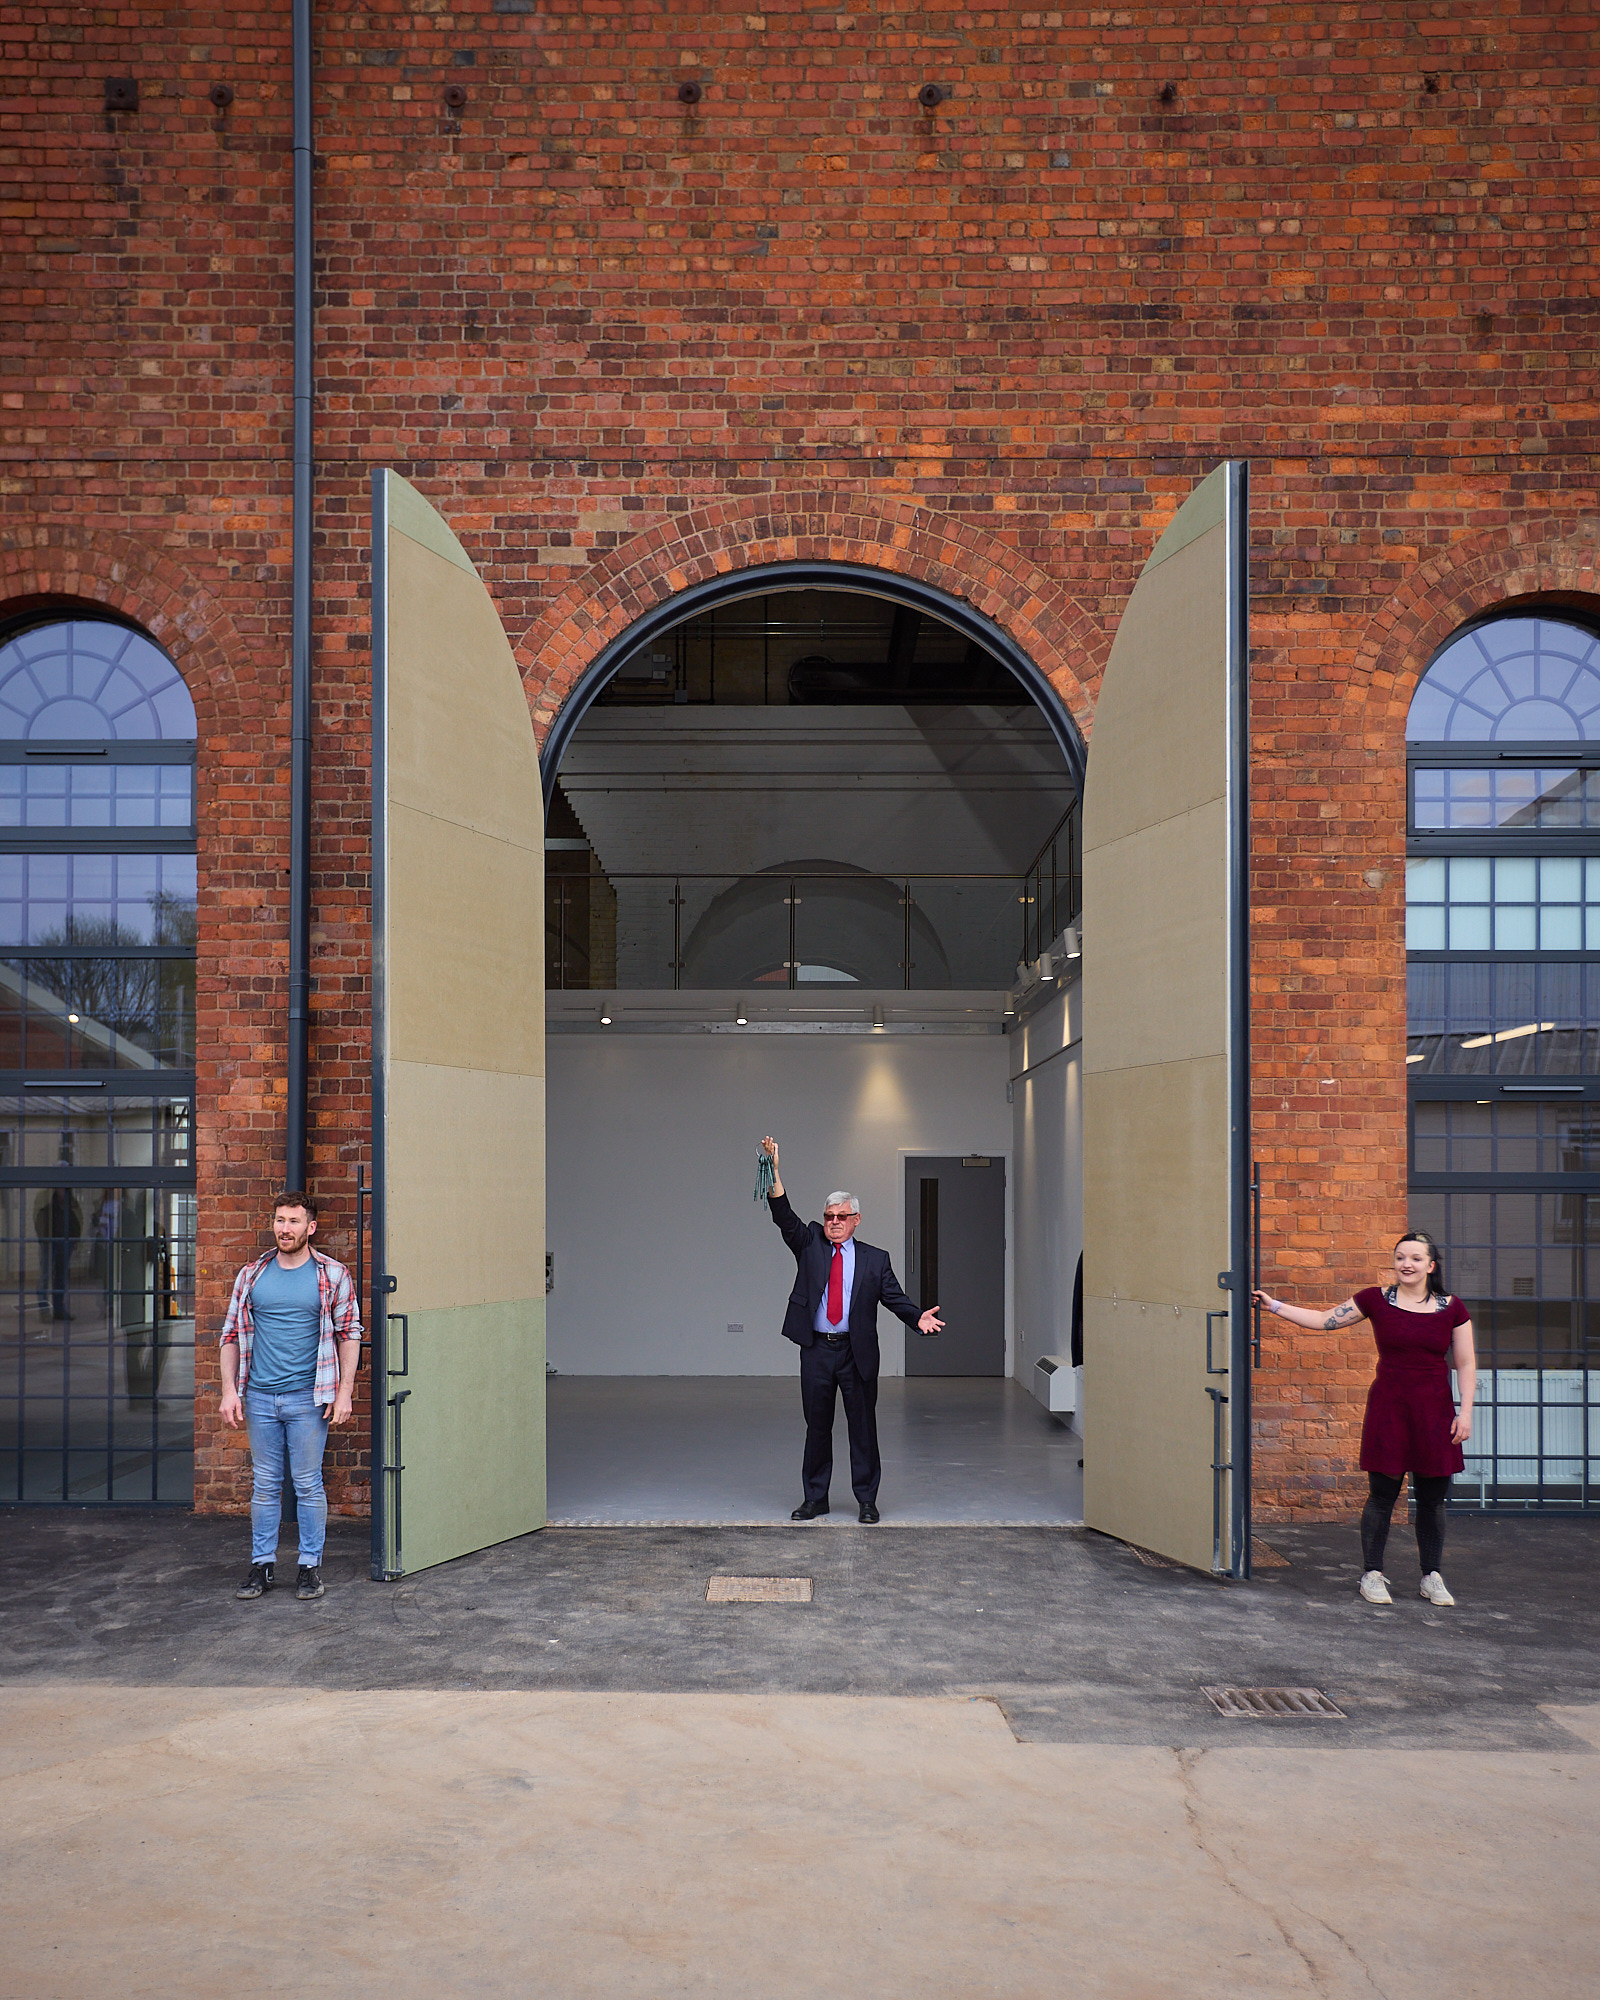 Roger Medwell stands in the open doorway of the new Daimler Powerhouse Creation centre with performers Luka Owen and Daniel Connor  on either side